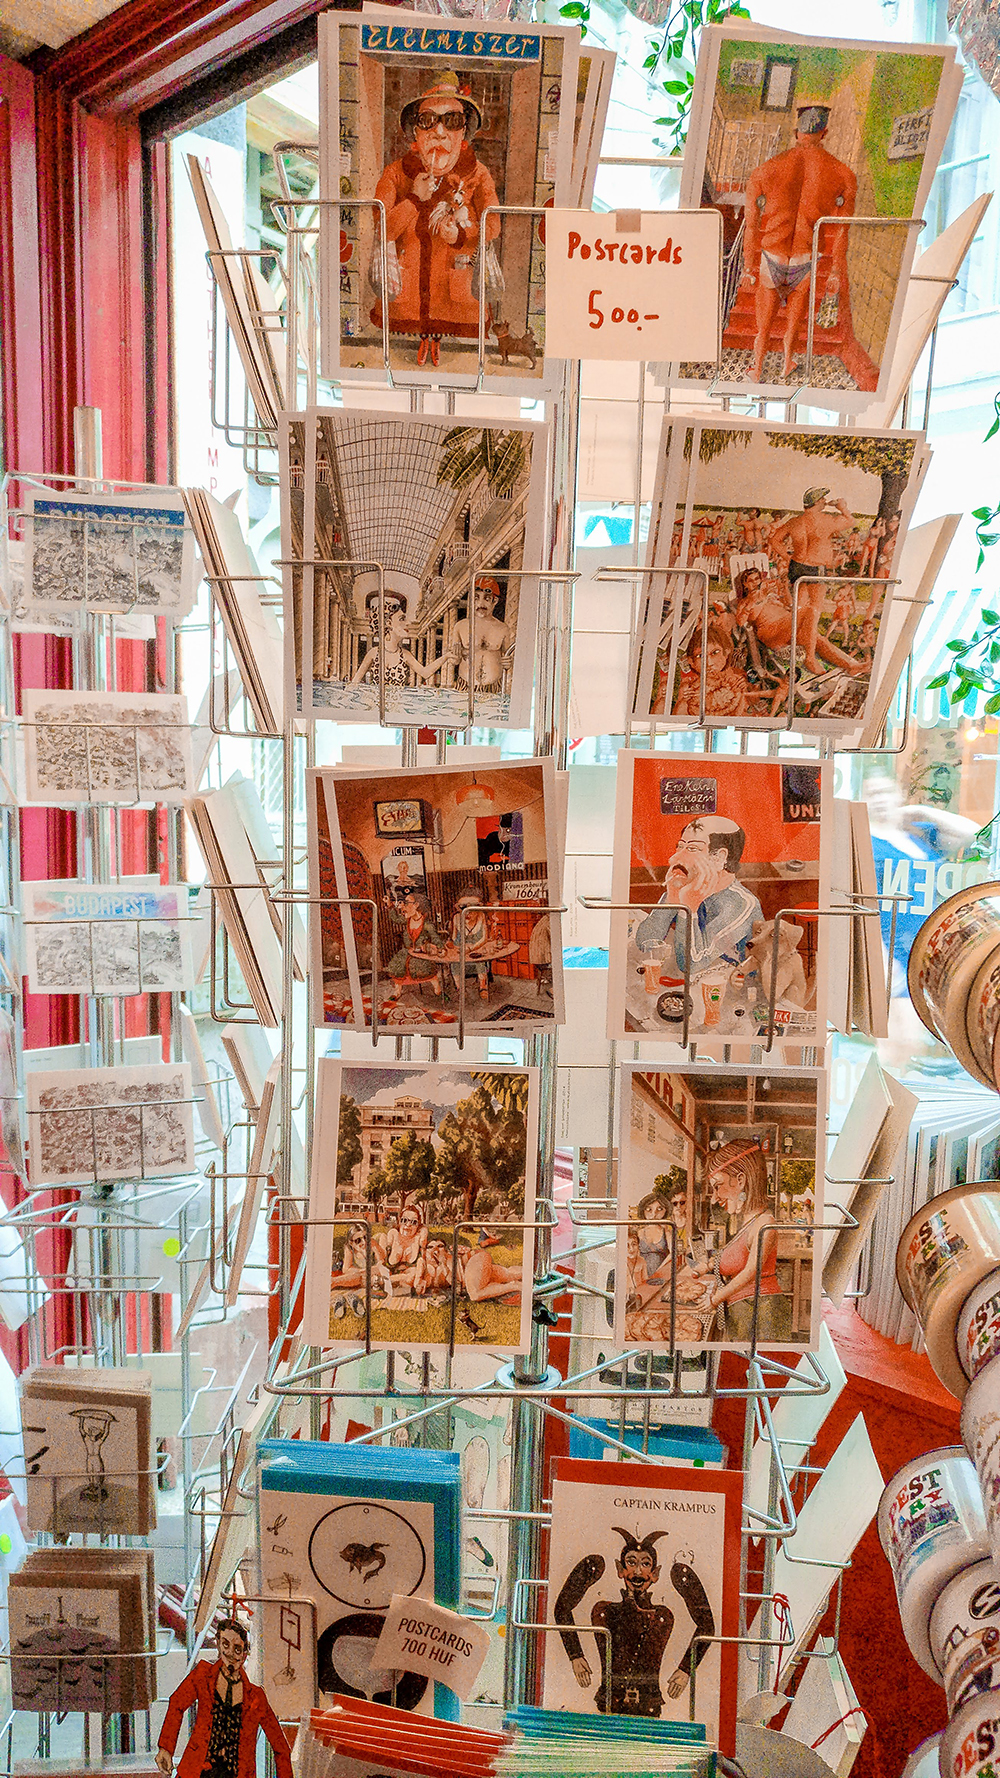 Postcards in Köszi - Budapest design shop guide to best Hungarian souvenirs | Aliz's Wonderland